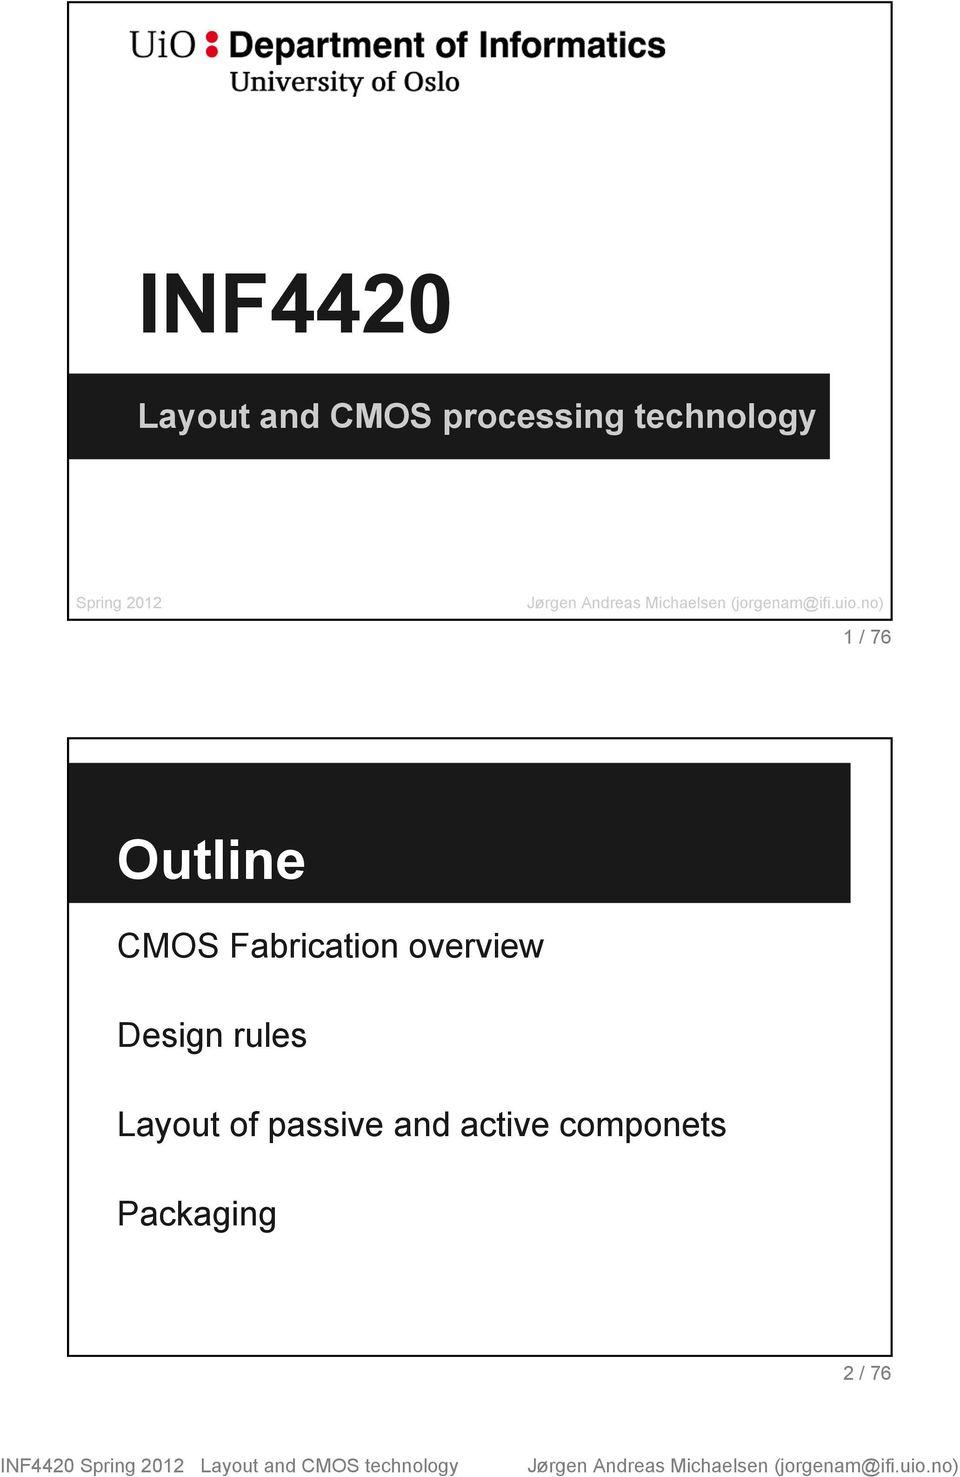 Inf4420 Outline Layout And Cmos Processing Technology Outlining Flex Circuits Integral Fingers Manufacturing Processes Fabrication Overview Design Rules